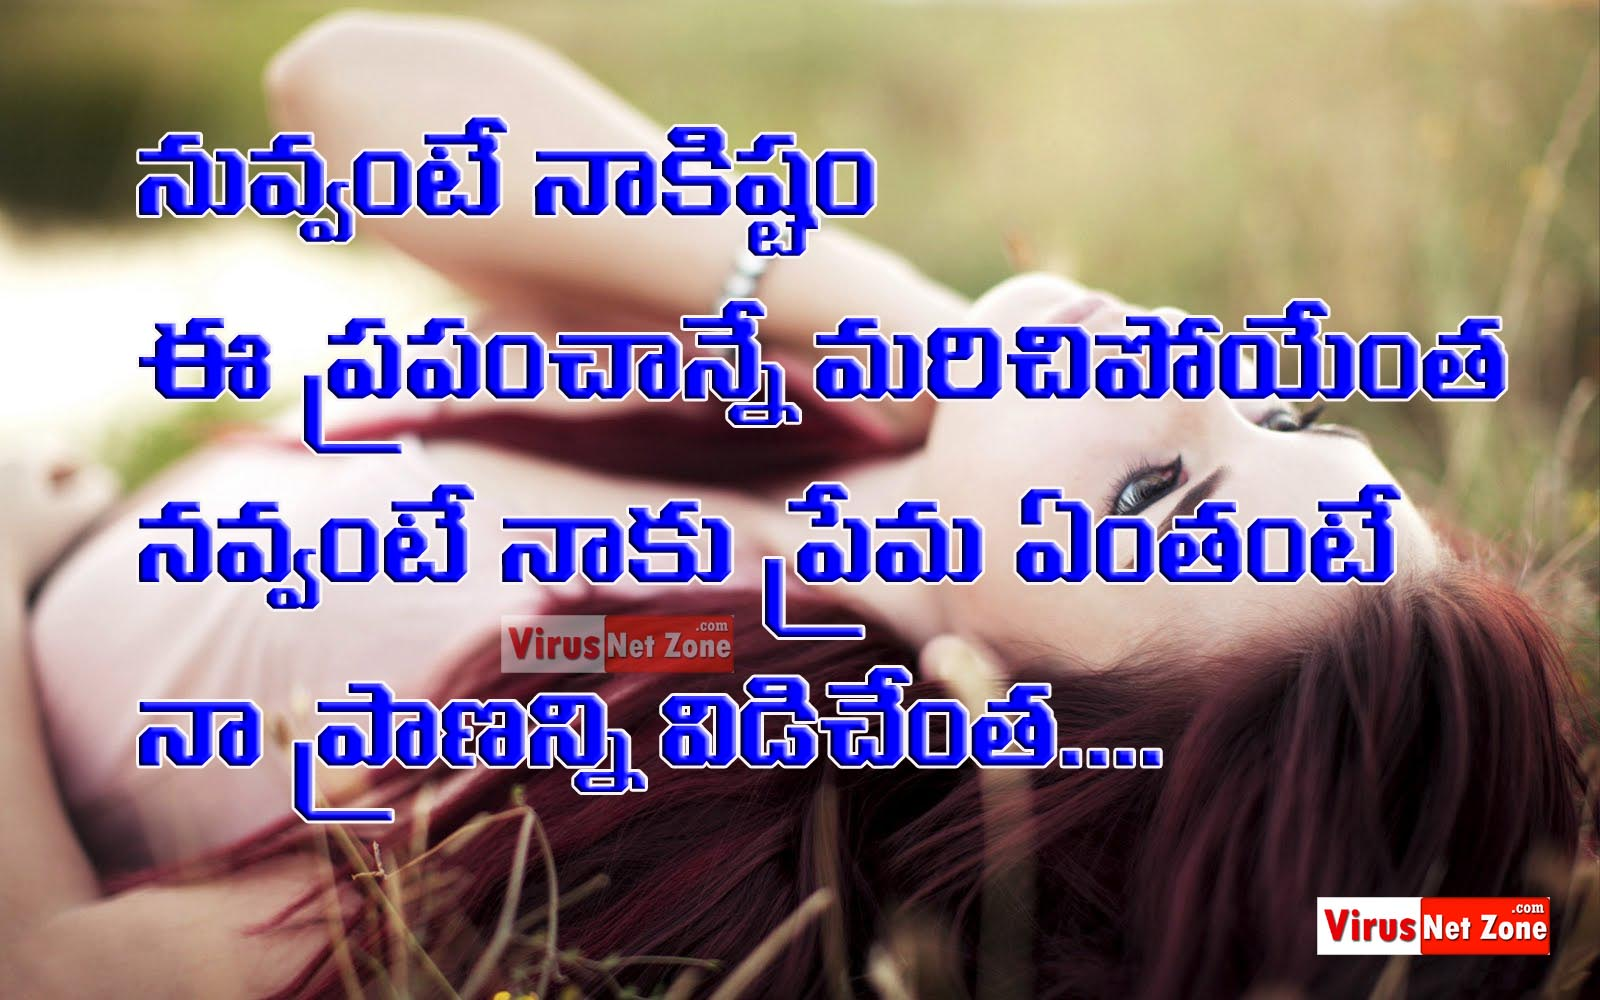 Telugu Love Quotes Unique Real Heart Touching Love Quotes Images In Telugu  Virus Net Zone